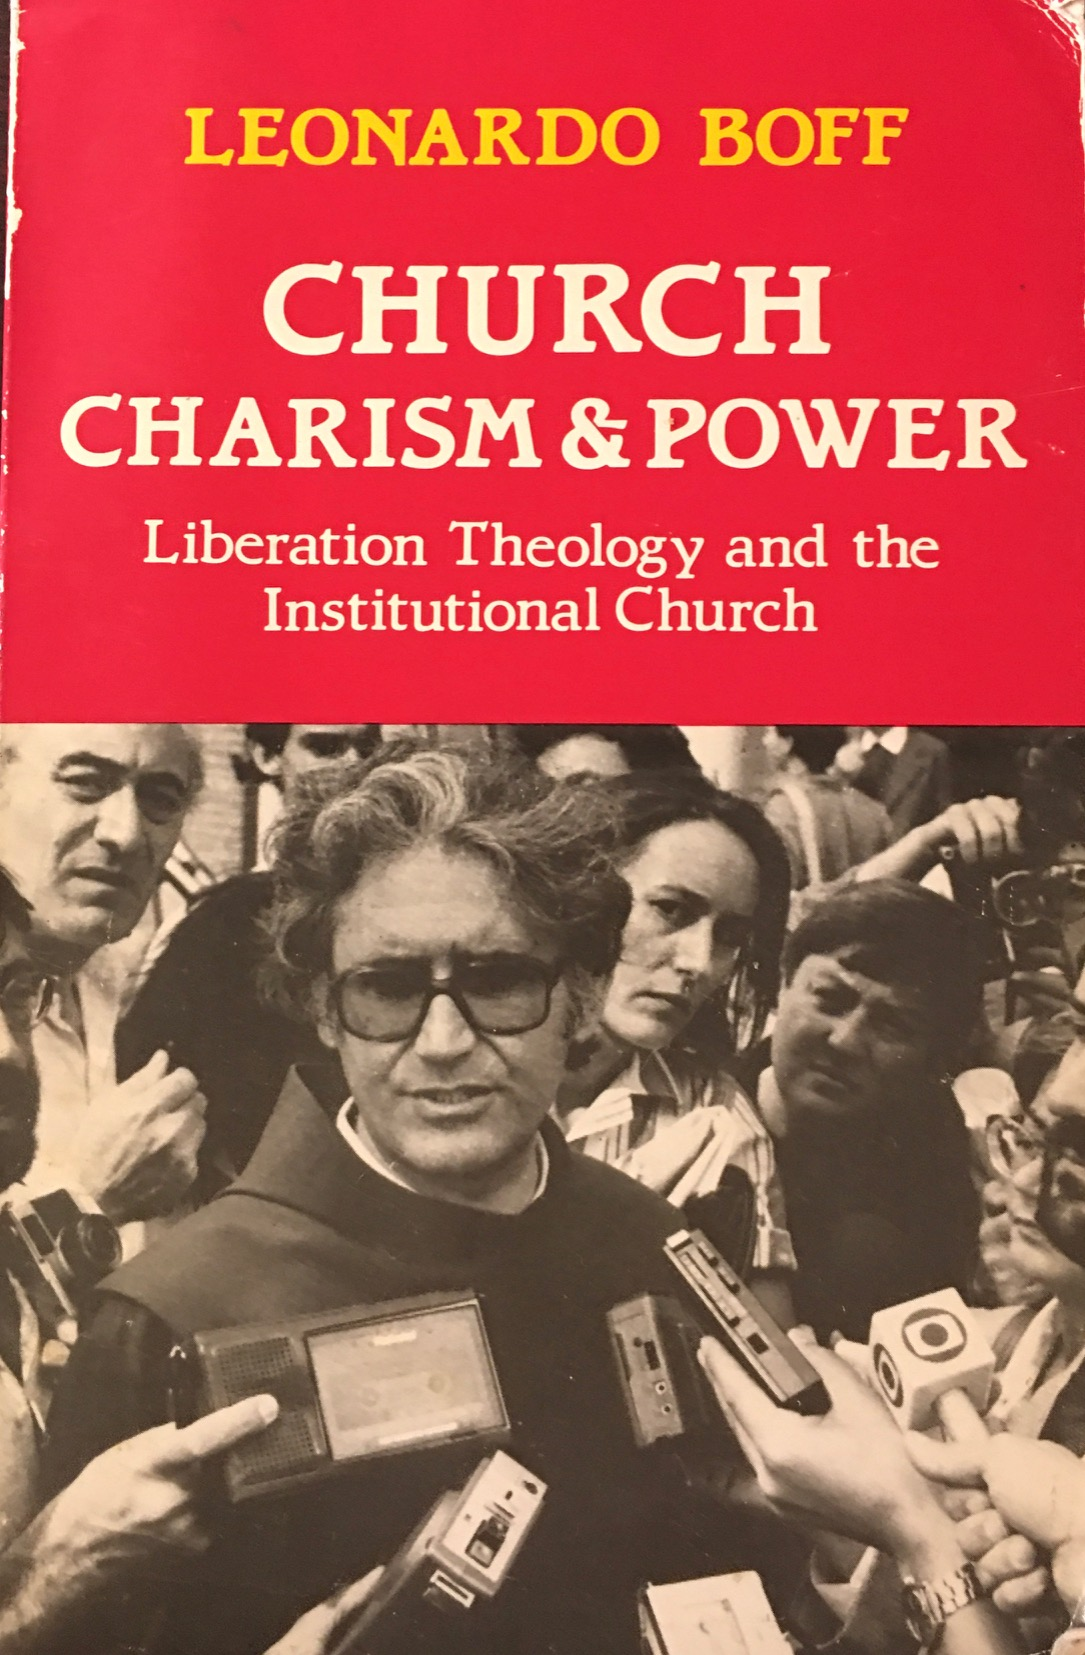 Image for Church, Charism and Power: Liberation Theology and the Institutional Church